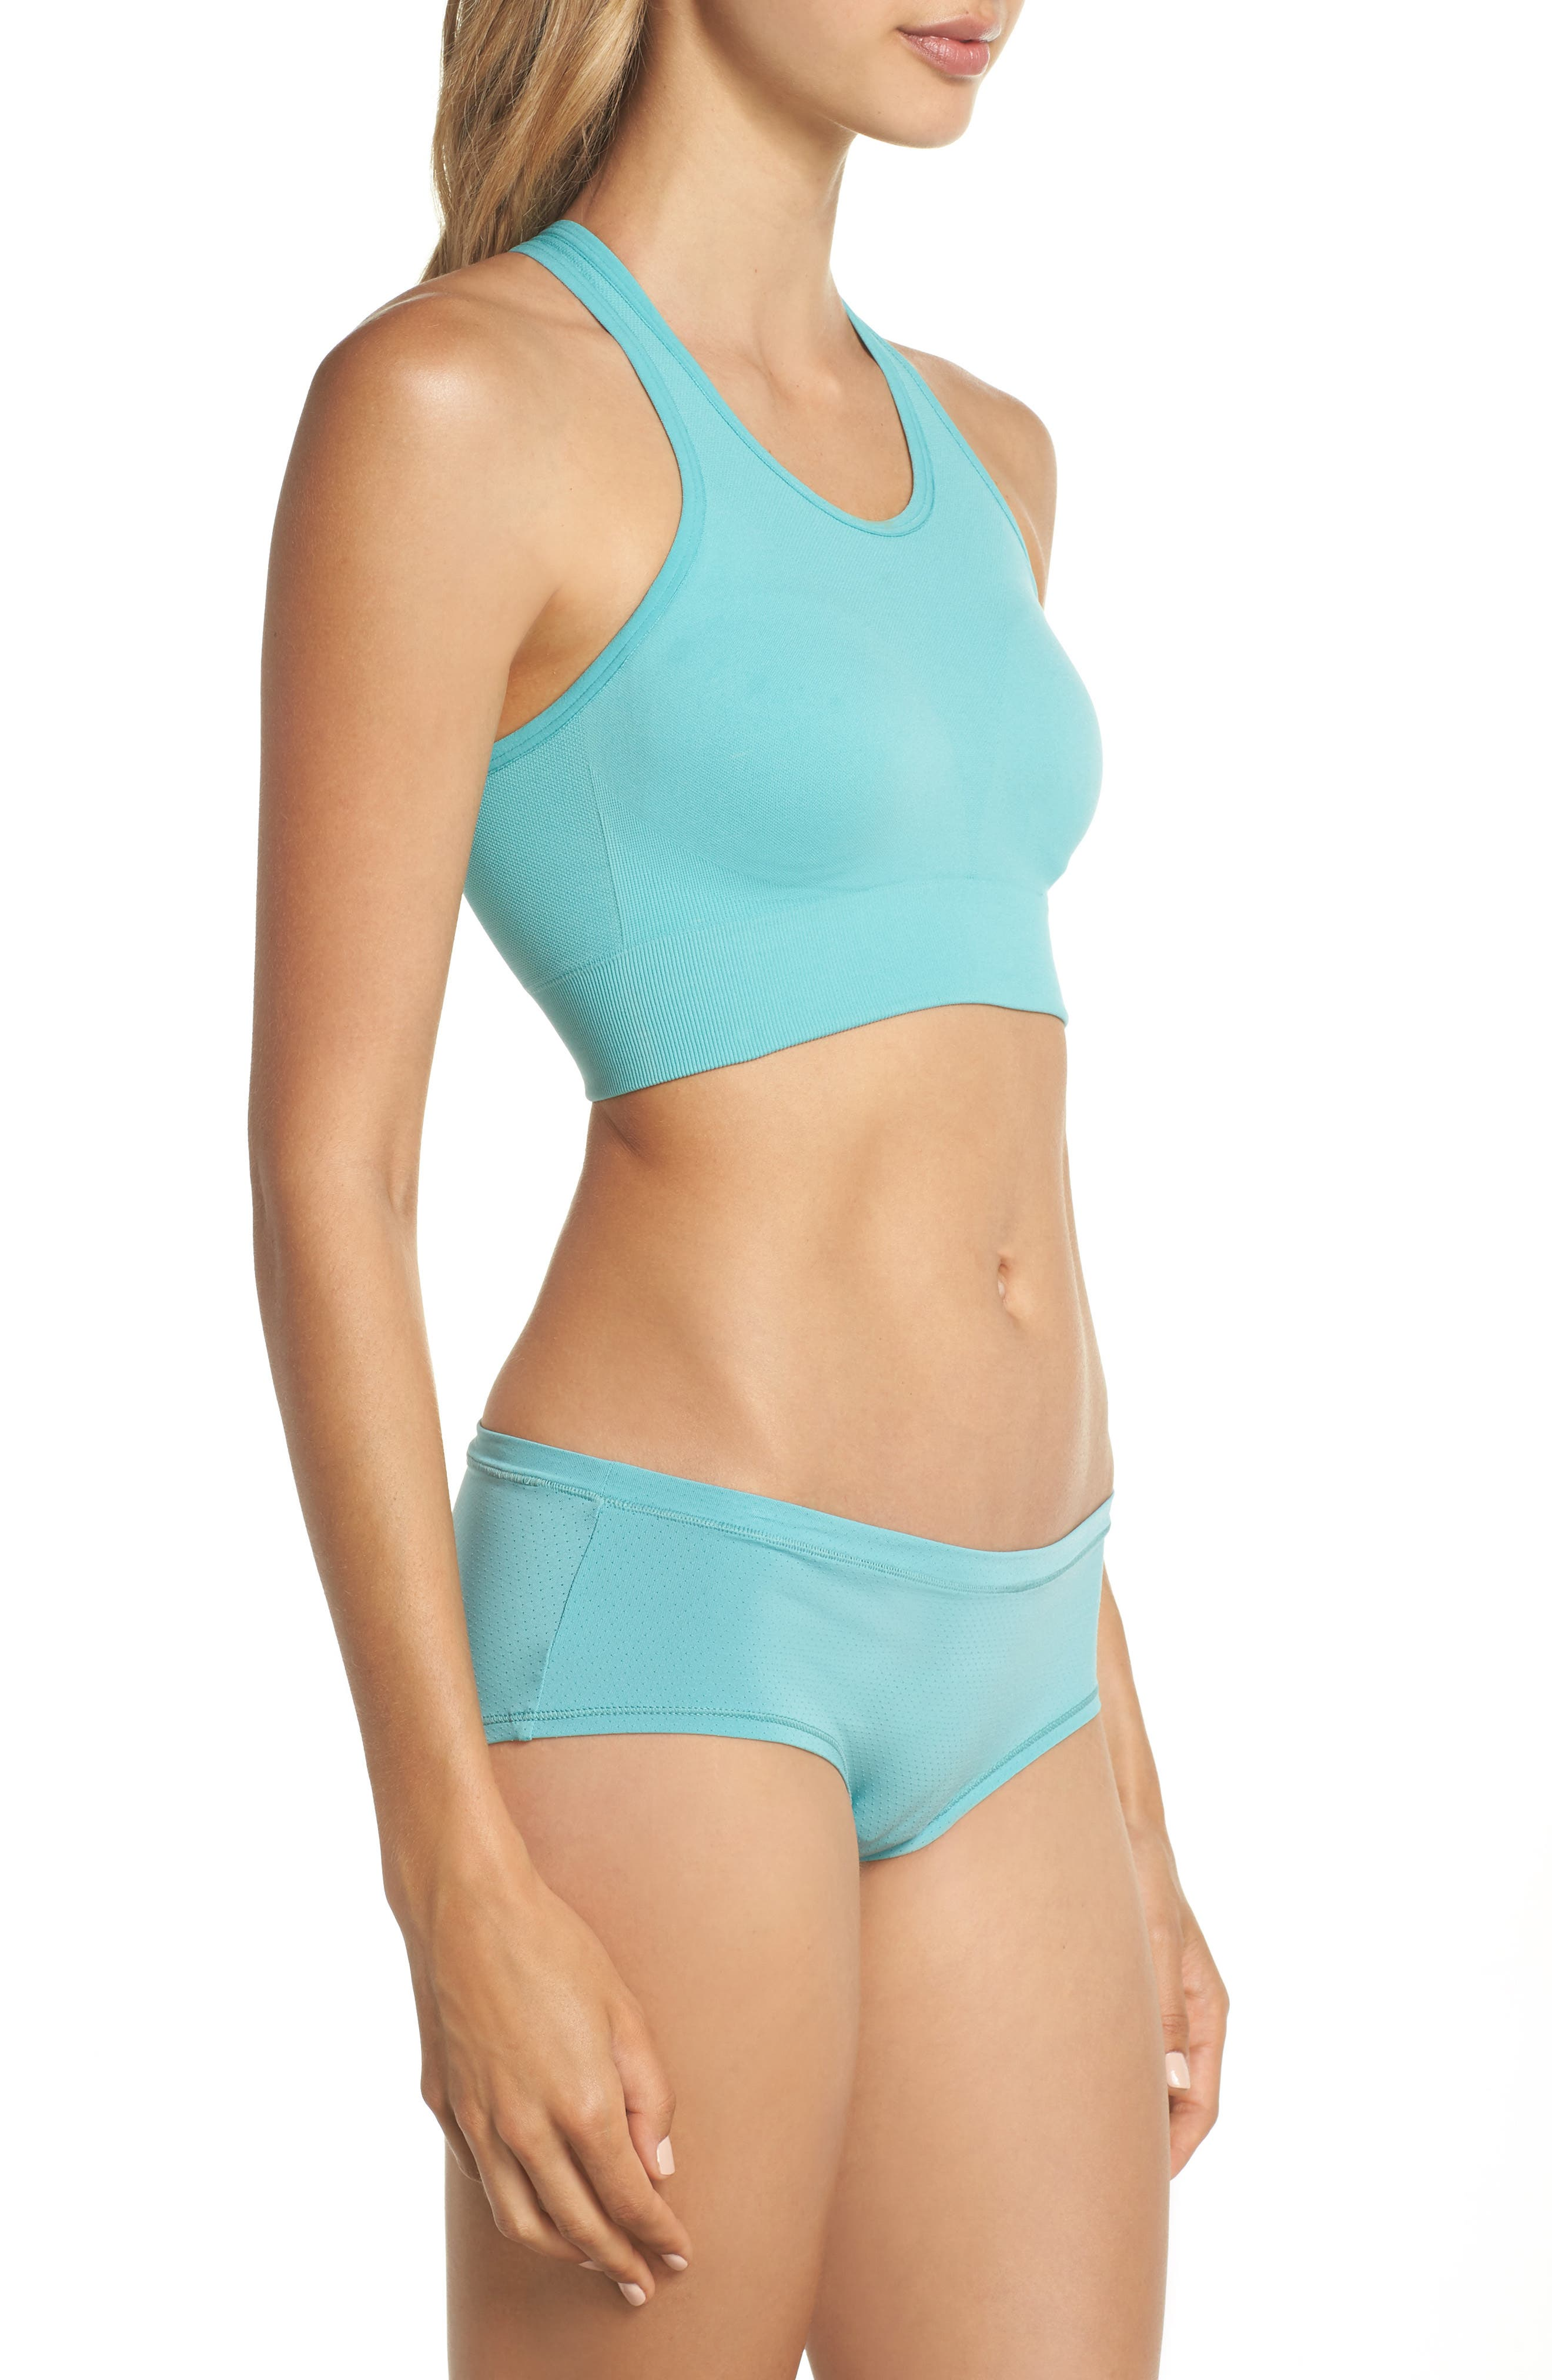 Relay Sports Bra,                             Alternate thumbnail 10, color,                             TEAL MEADOW